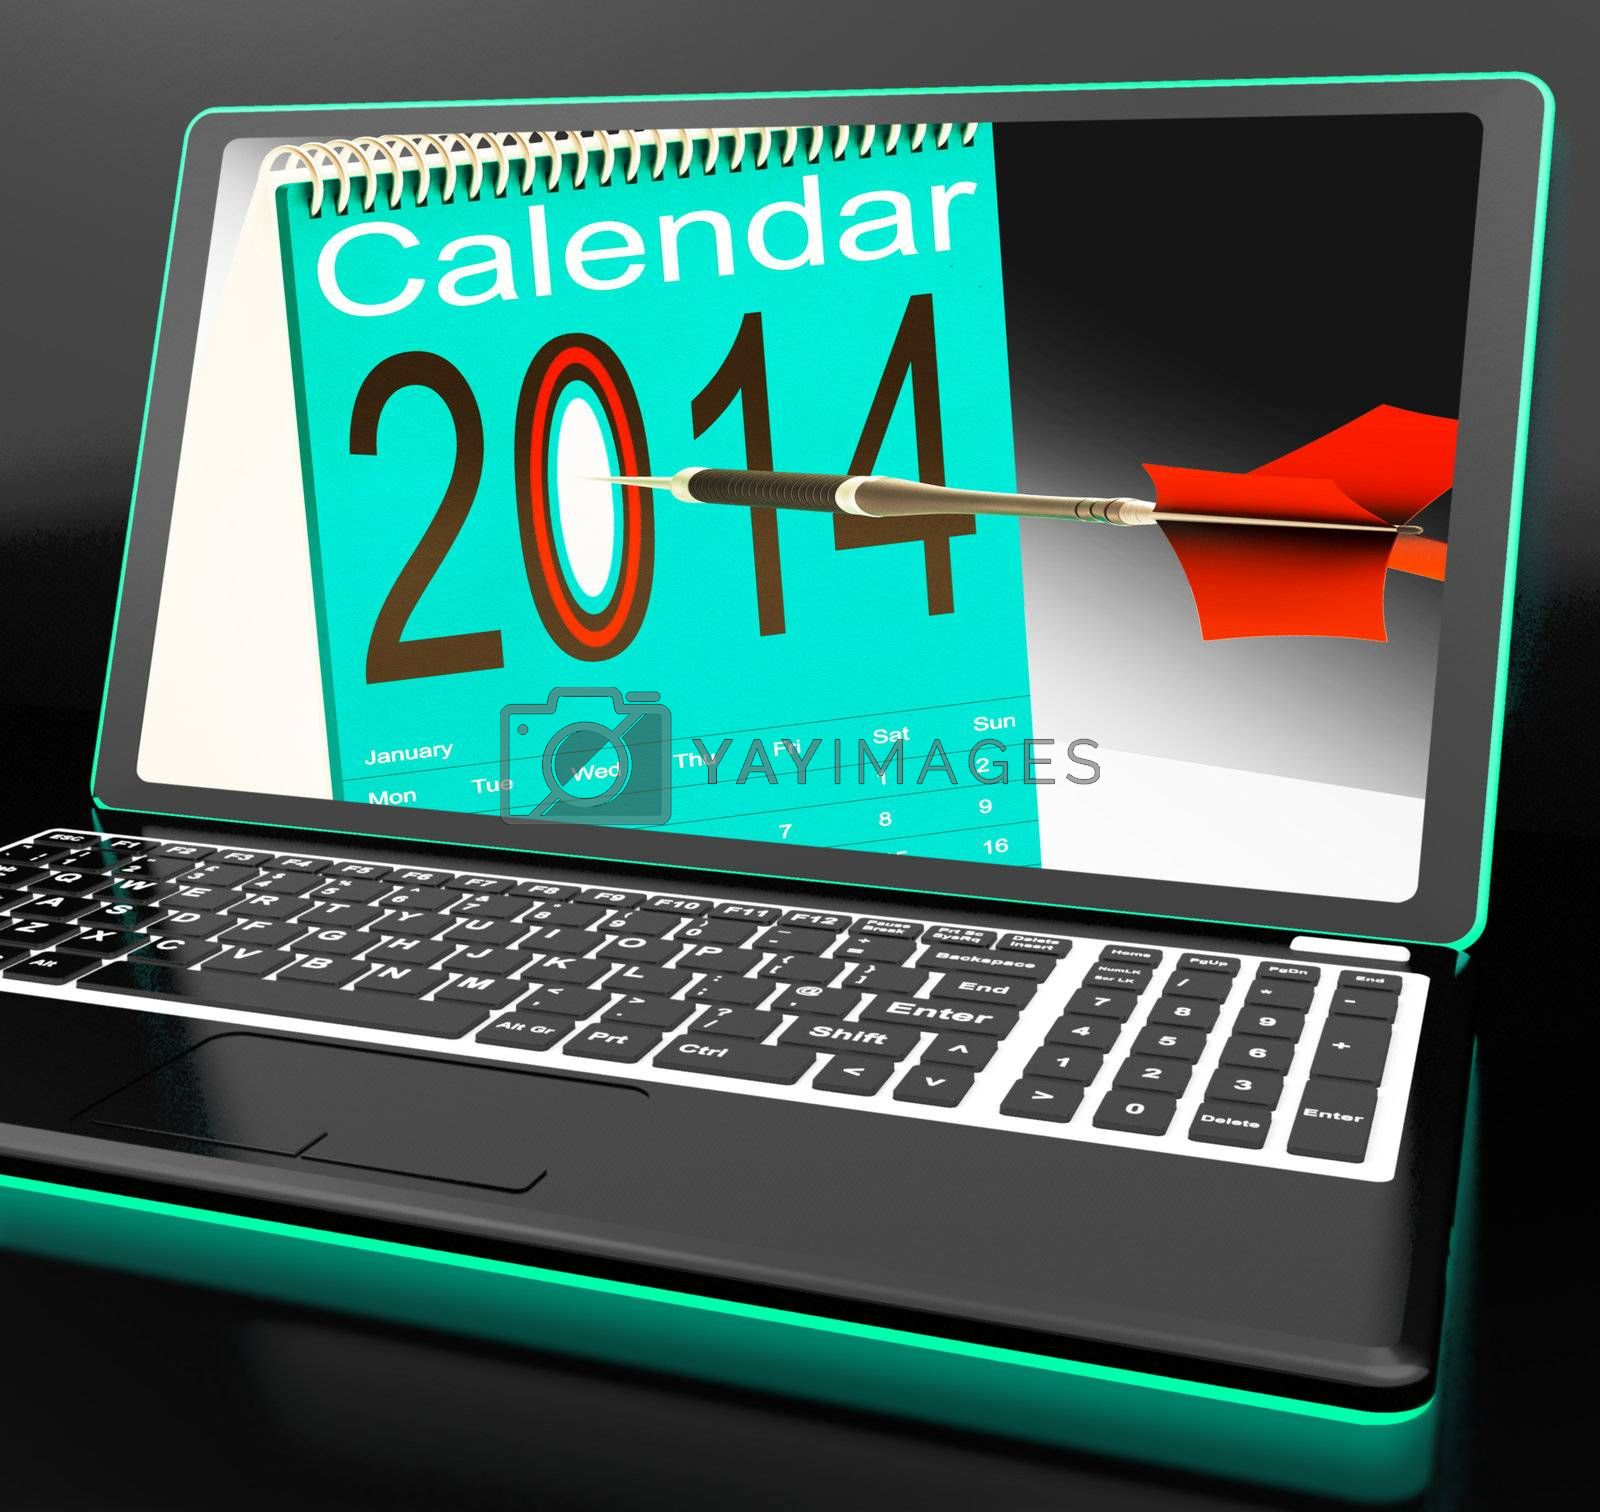 Calendar 2014 On Laptop Showing Future Plans And Goals